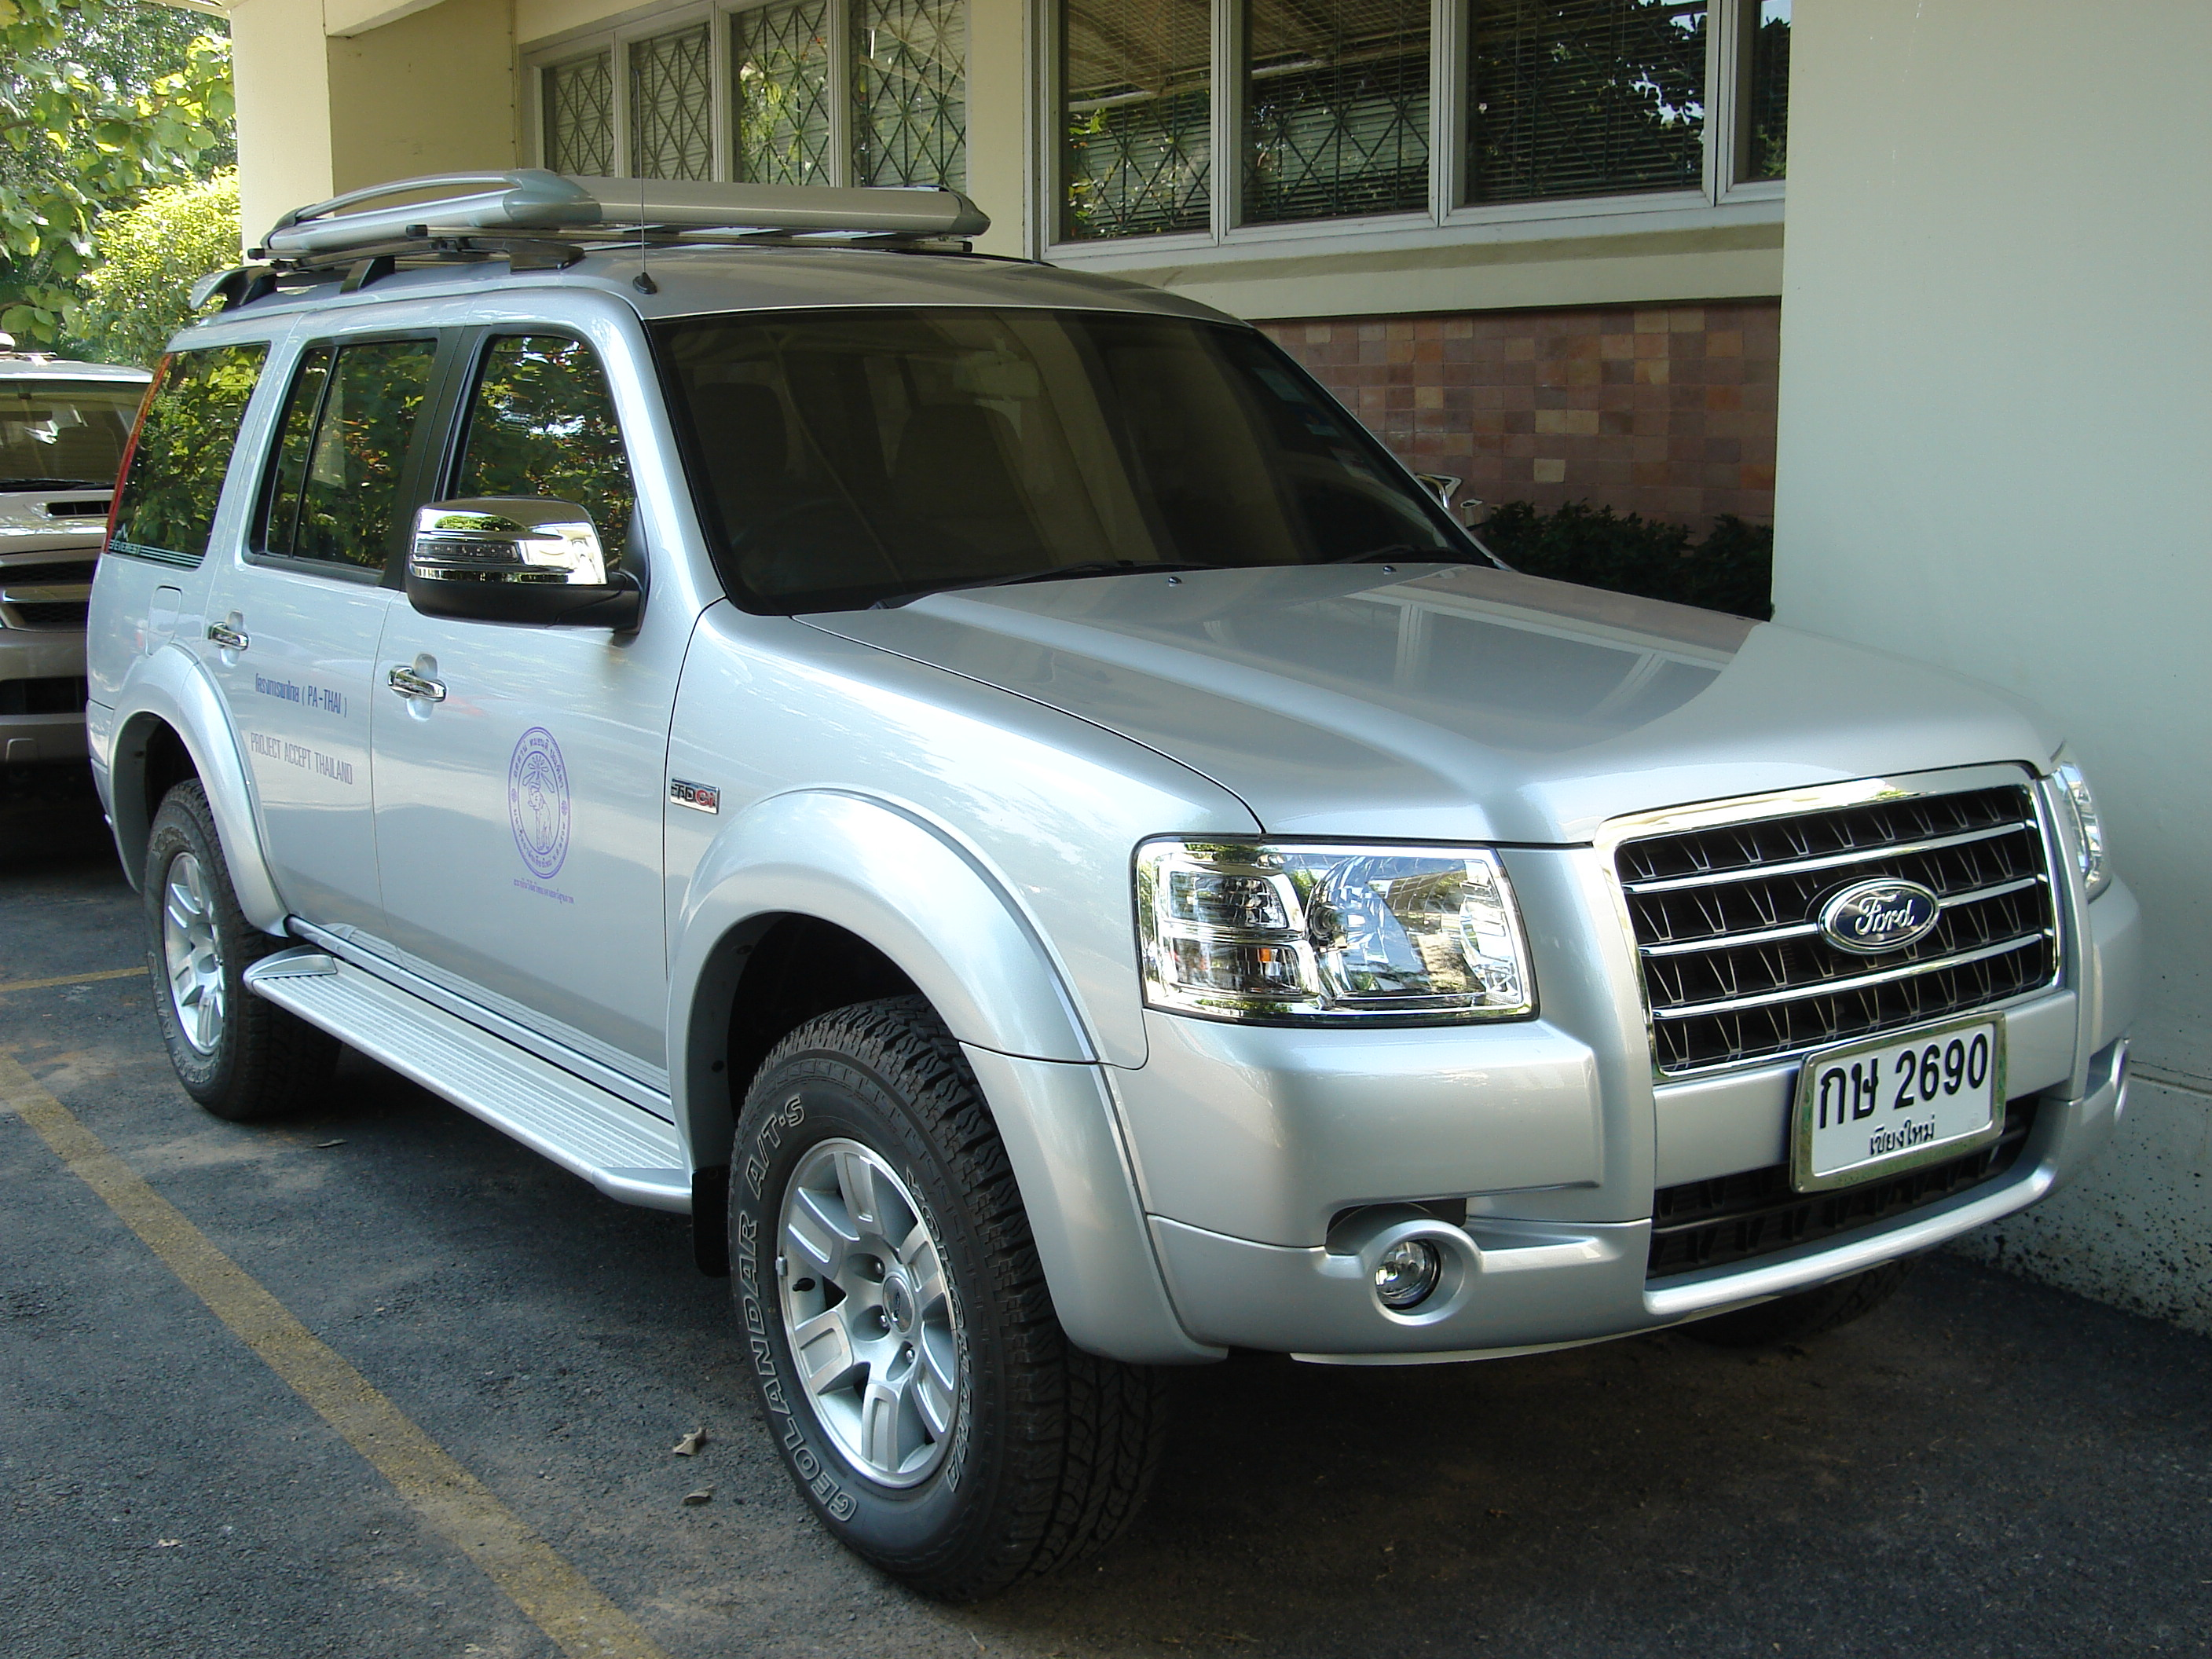 Ford everest 2000 photo - 2